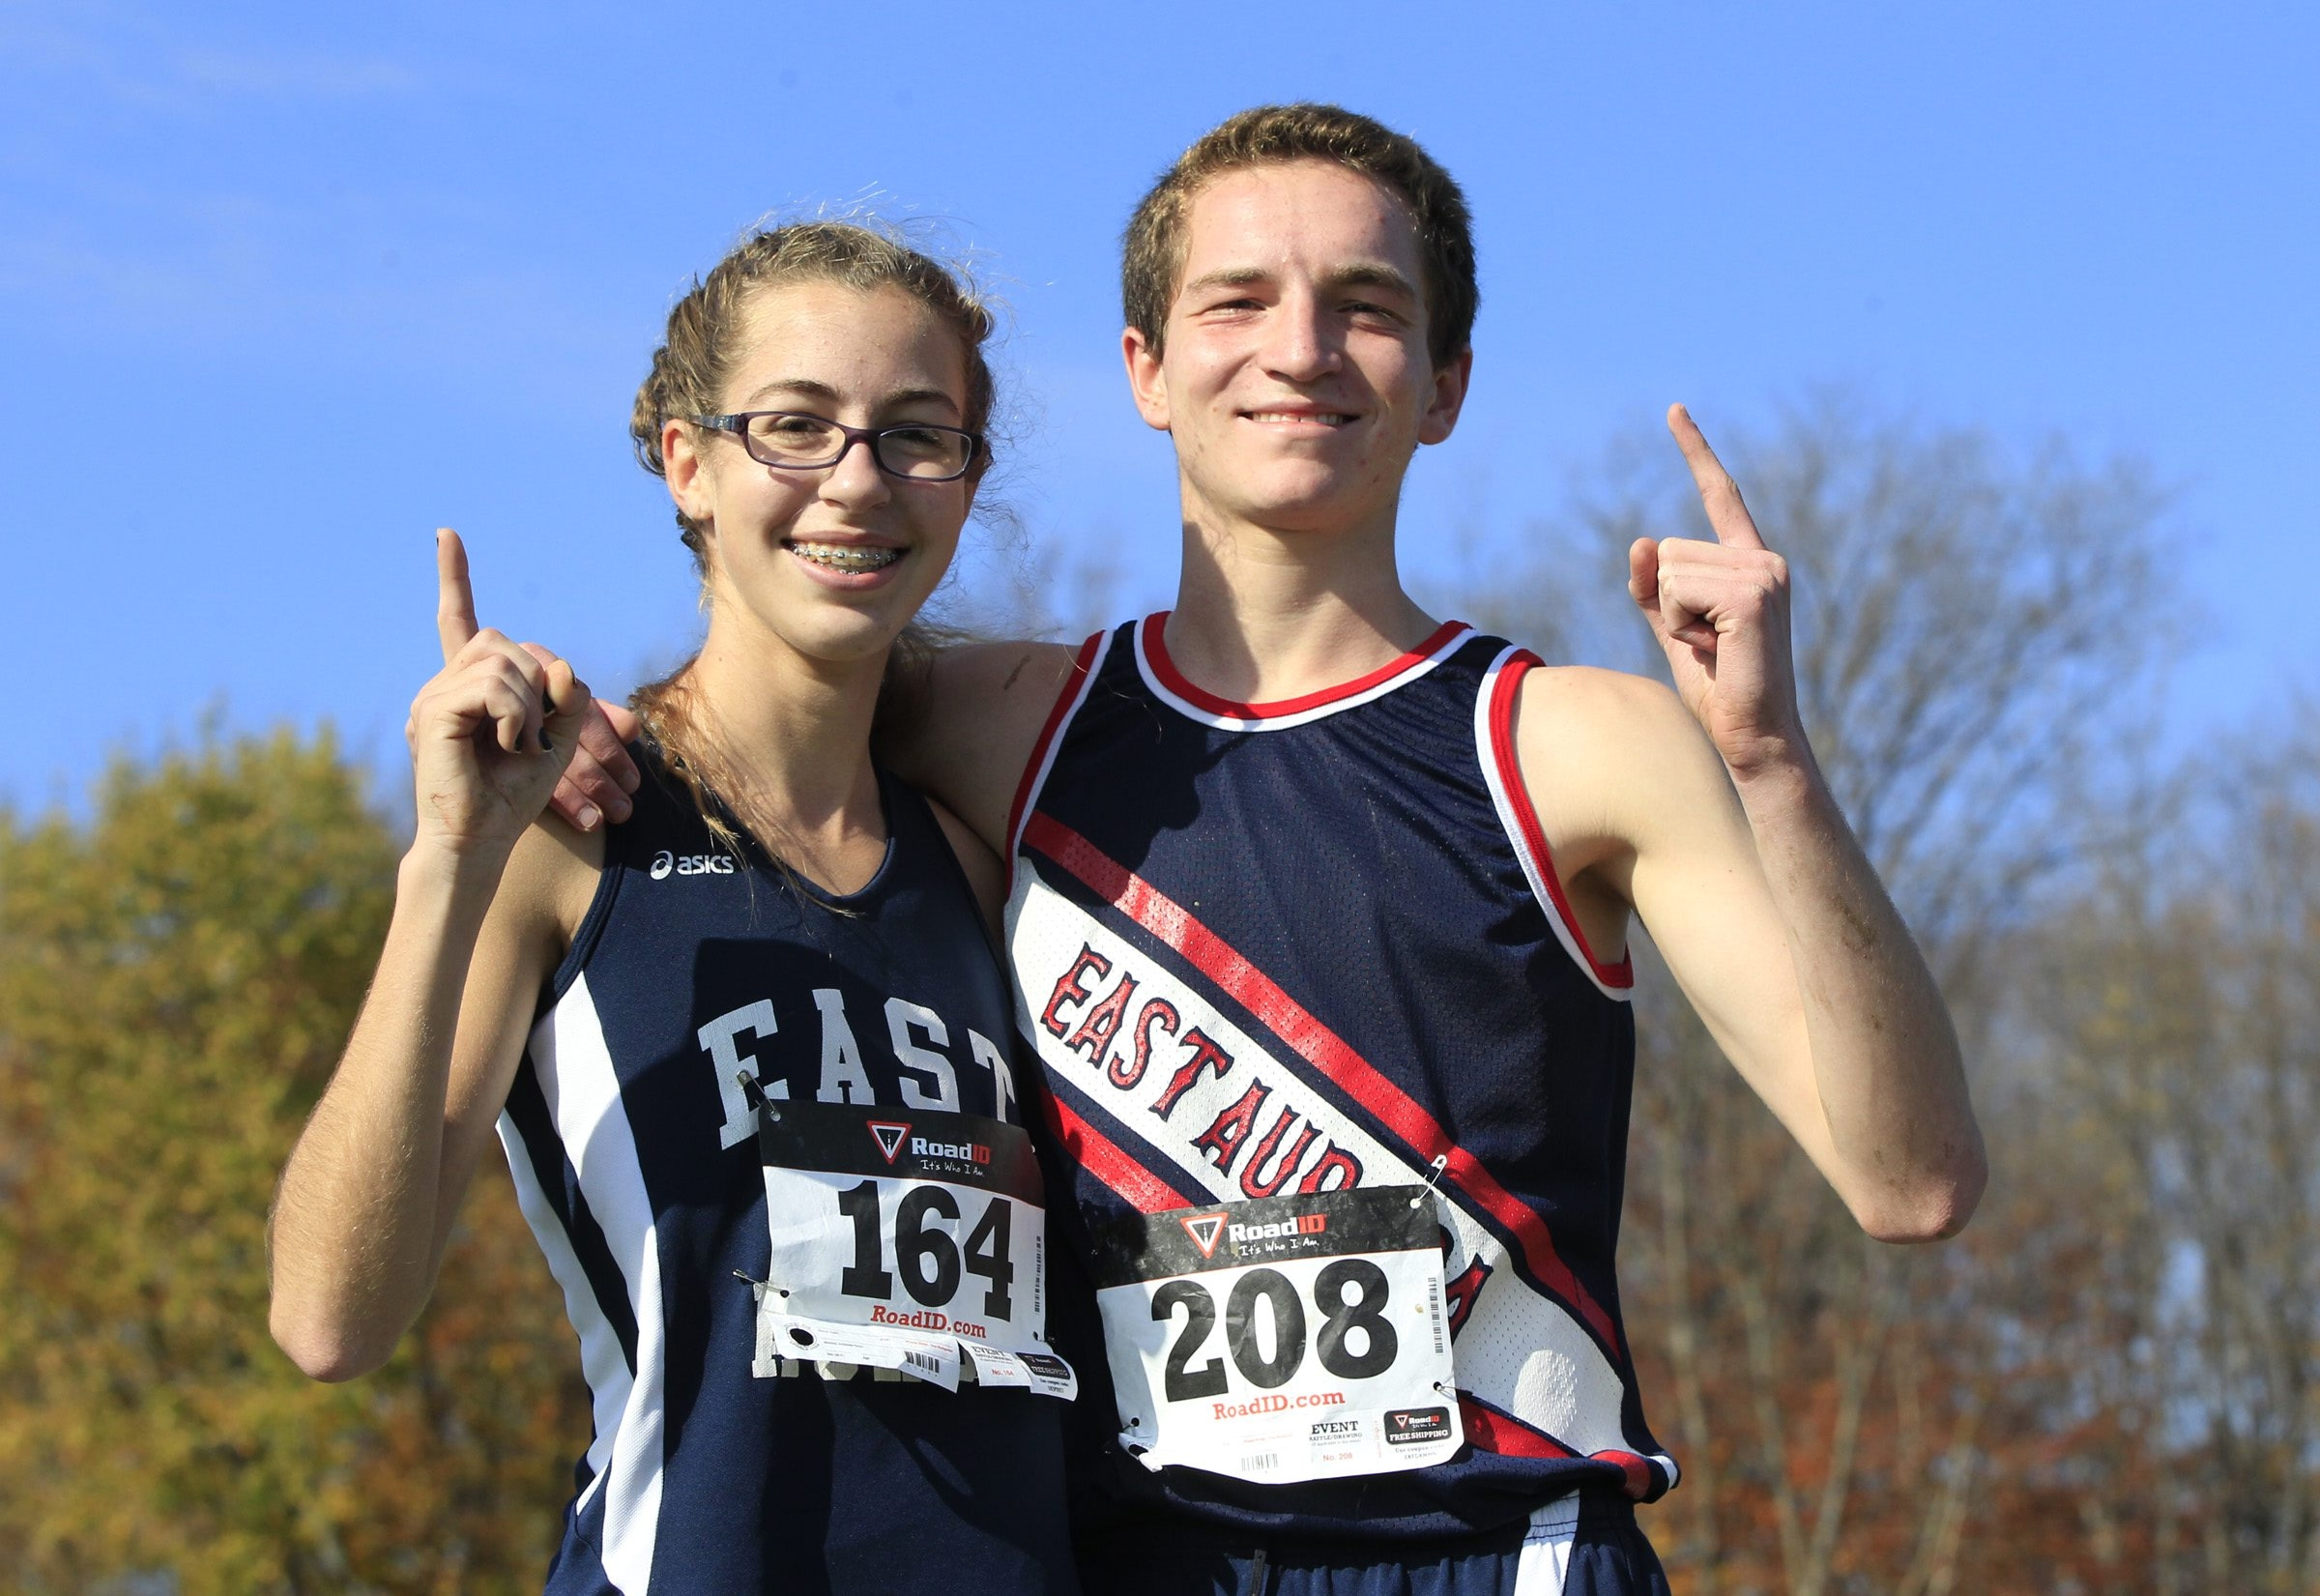 Winners of the ECIC cross country meet from East Aurora are Sophia Tasselmyer and Kenny Vasbinder at East Aurora high school on Saturday, Oct. 25, 2014.